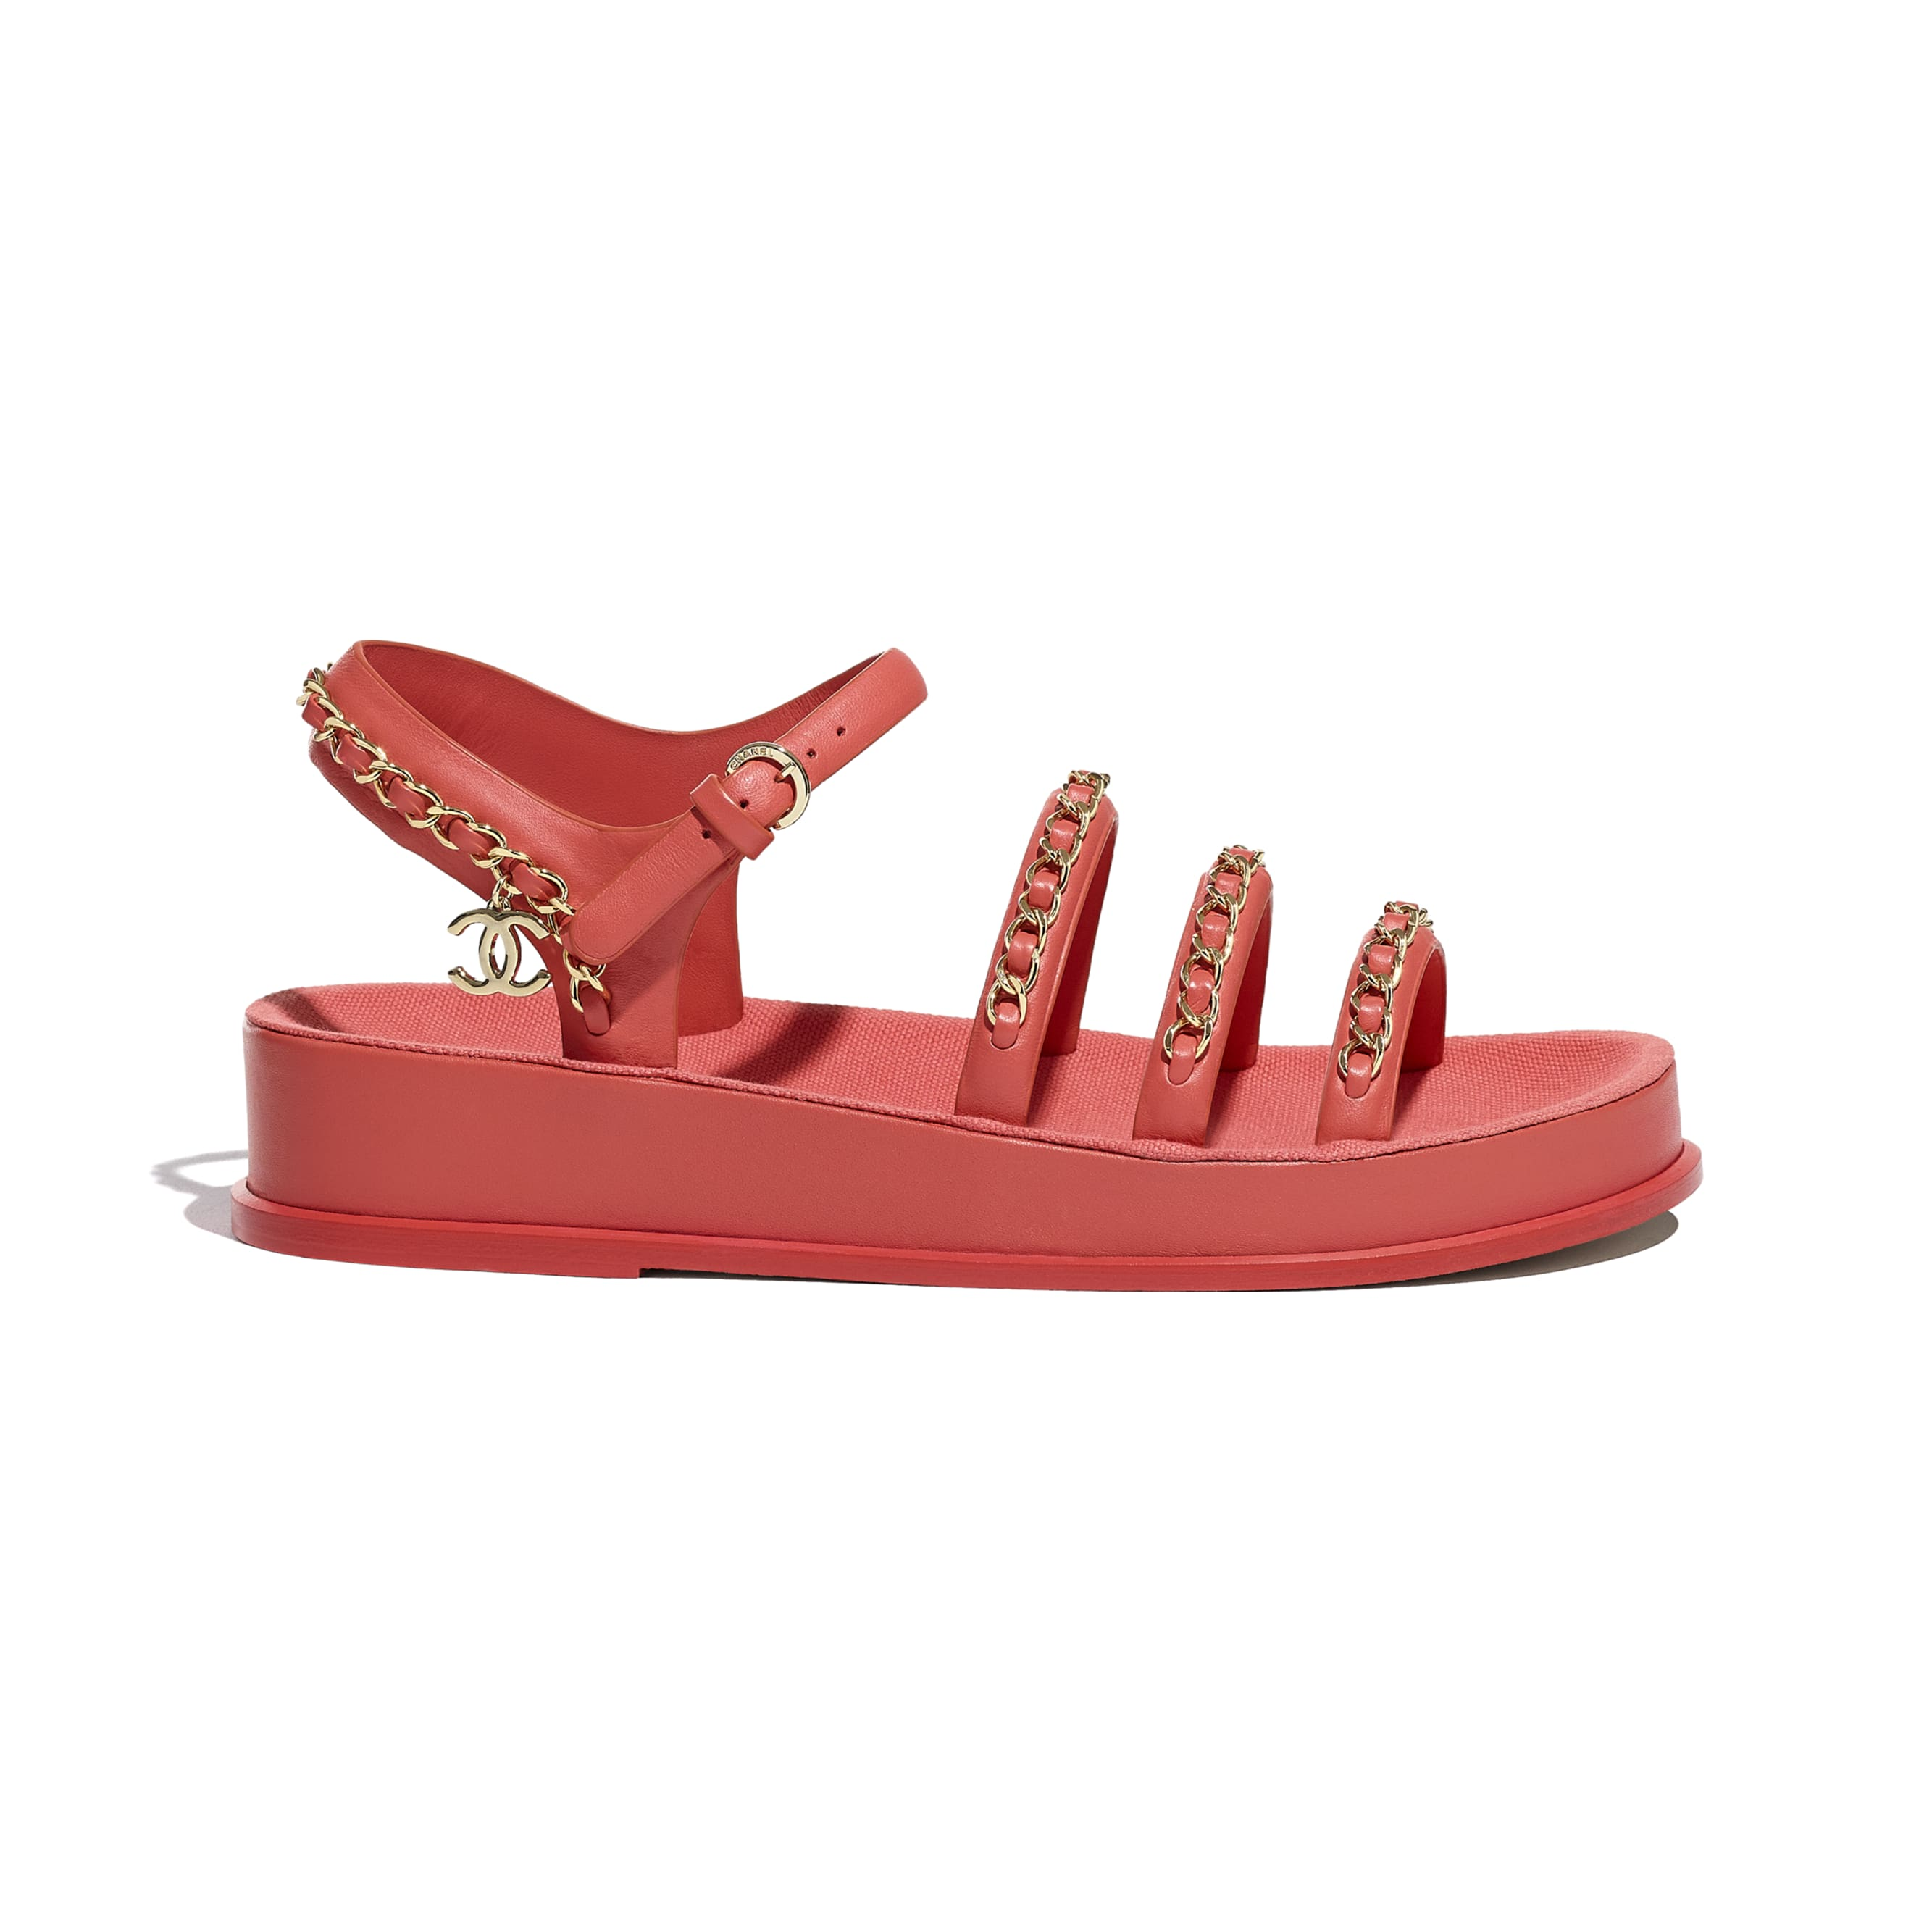 Sandals - Red - Calfskin - CHANEL - Default view - see standard sized version